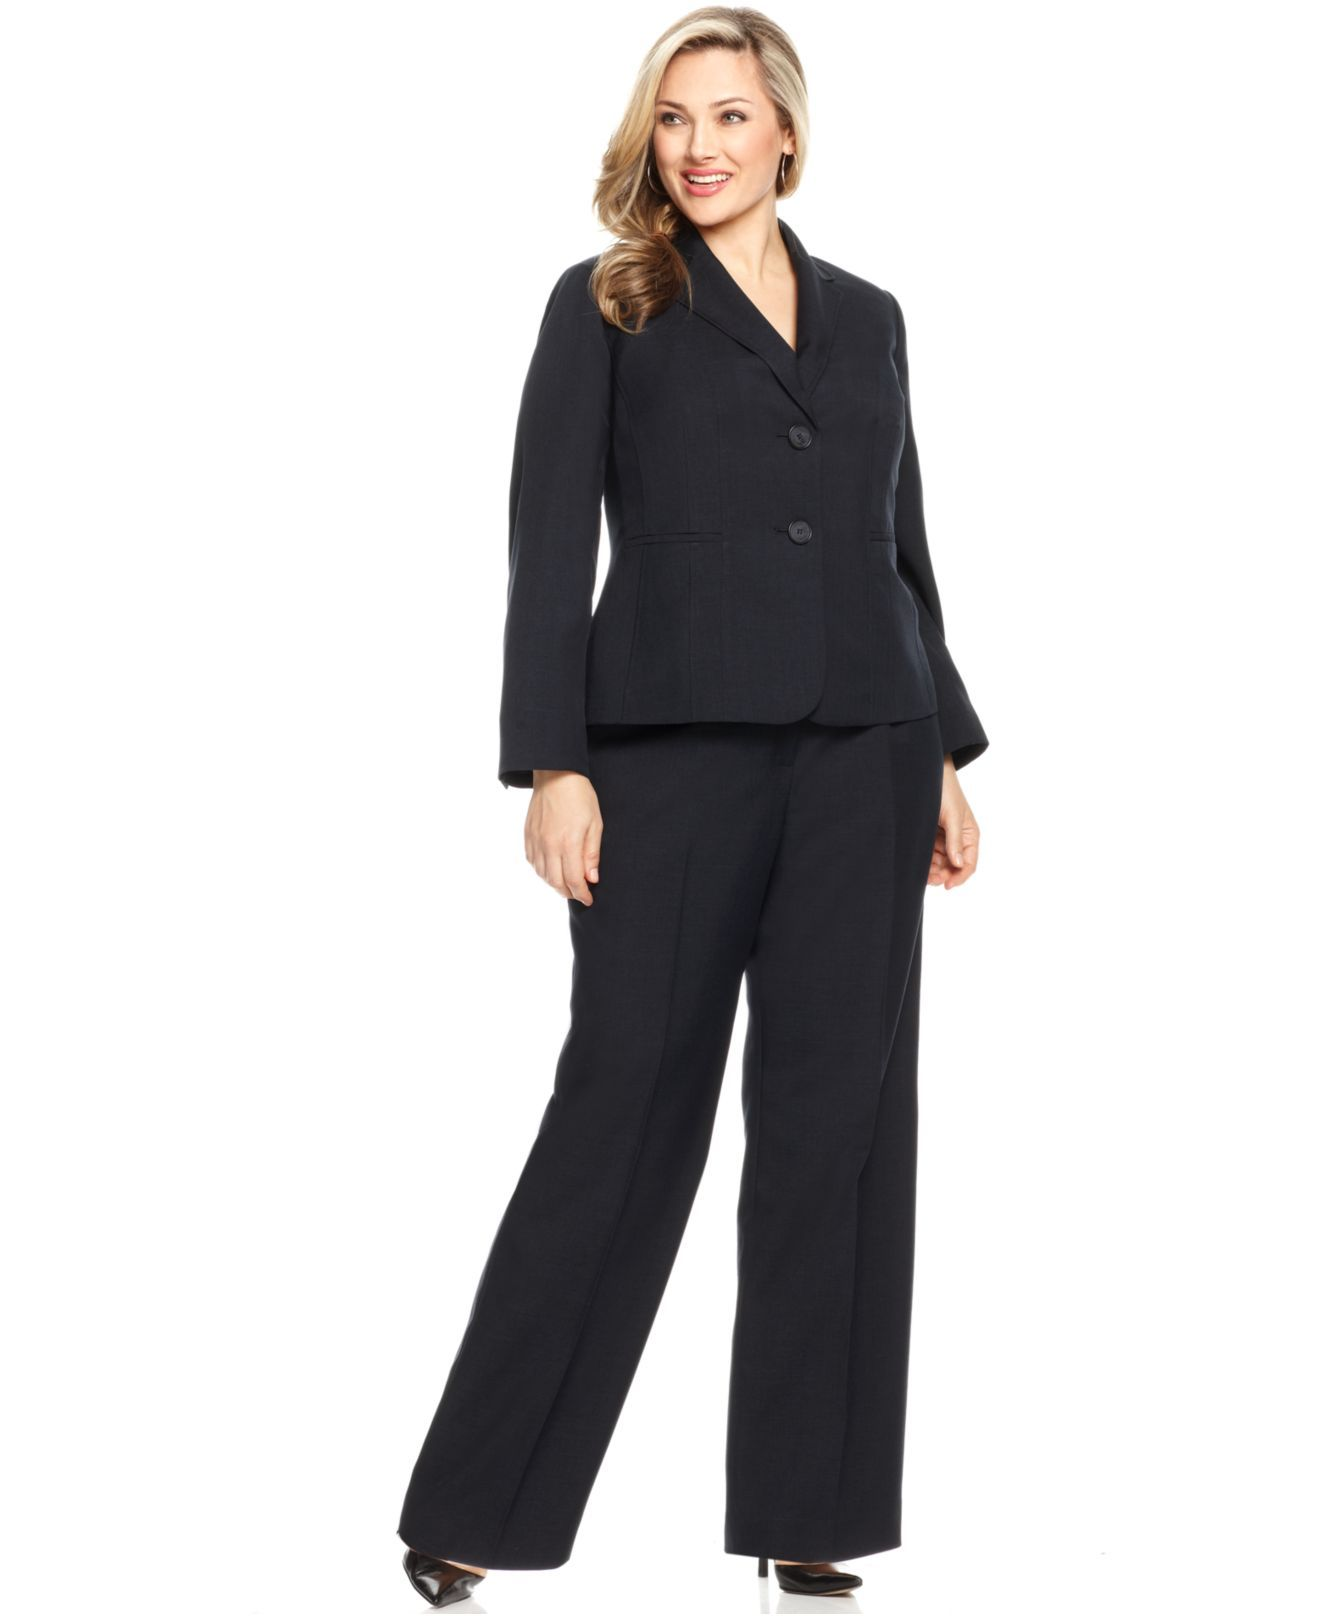 3f09a130d41a You can t go wrong with a dark pant suit.